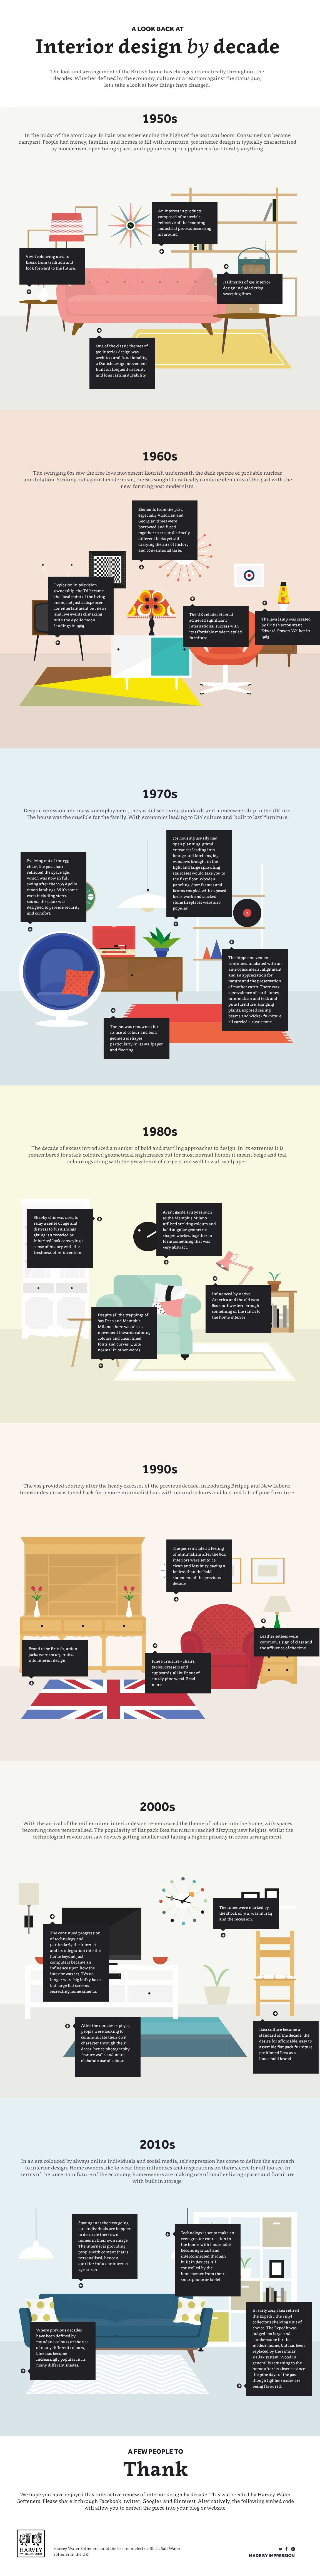 A Look Back At Interior Design By Decade Infographic